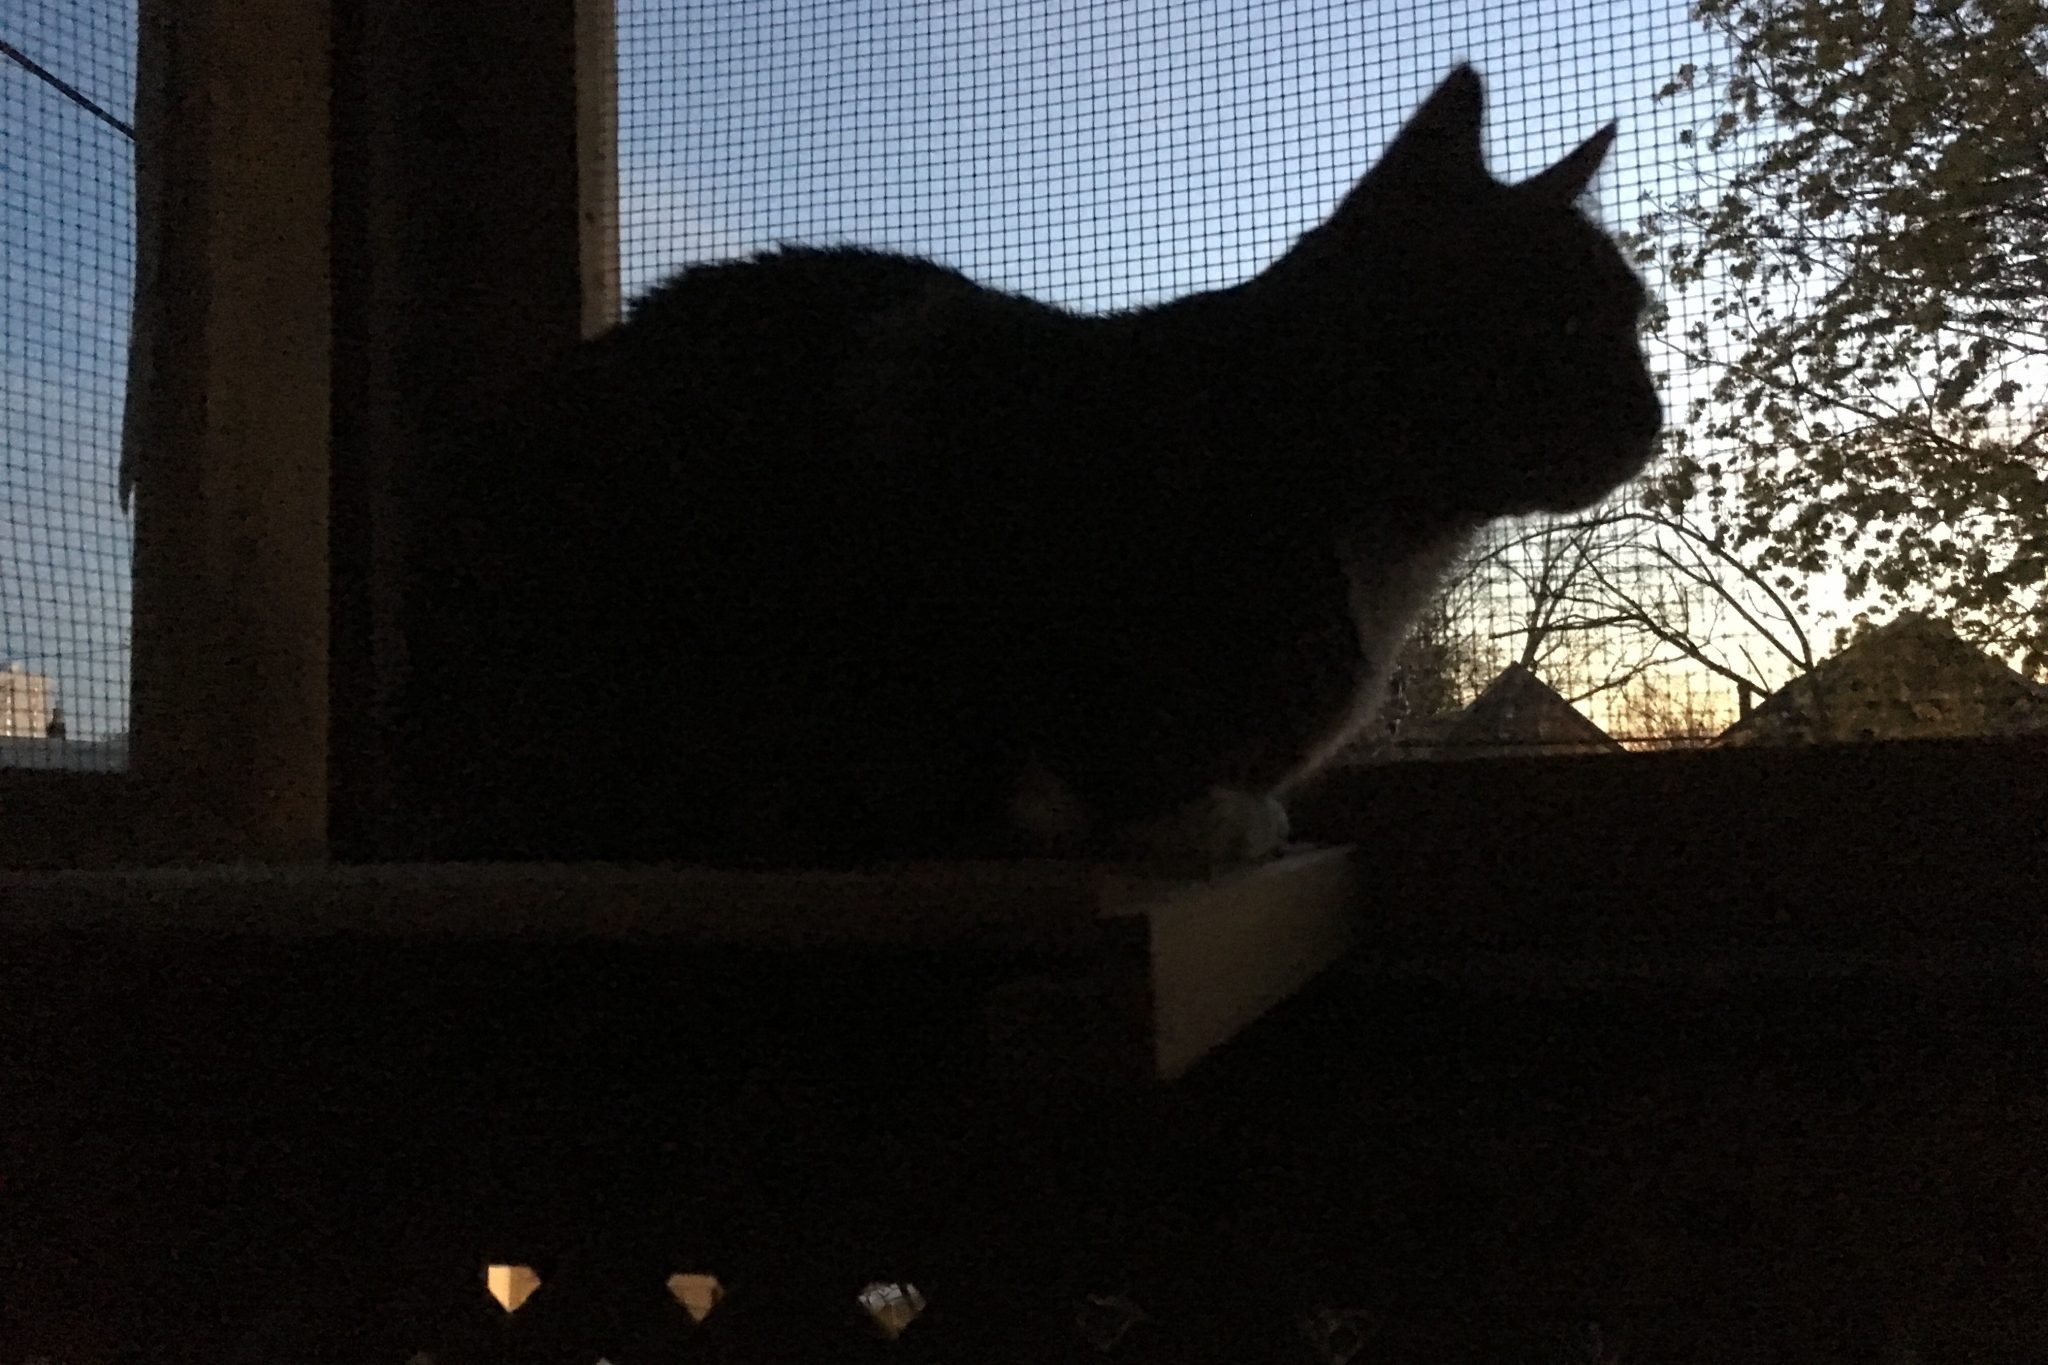 Cat silhouette on catio